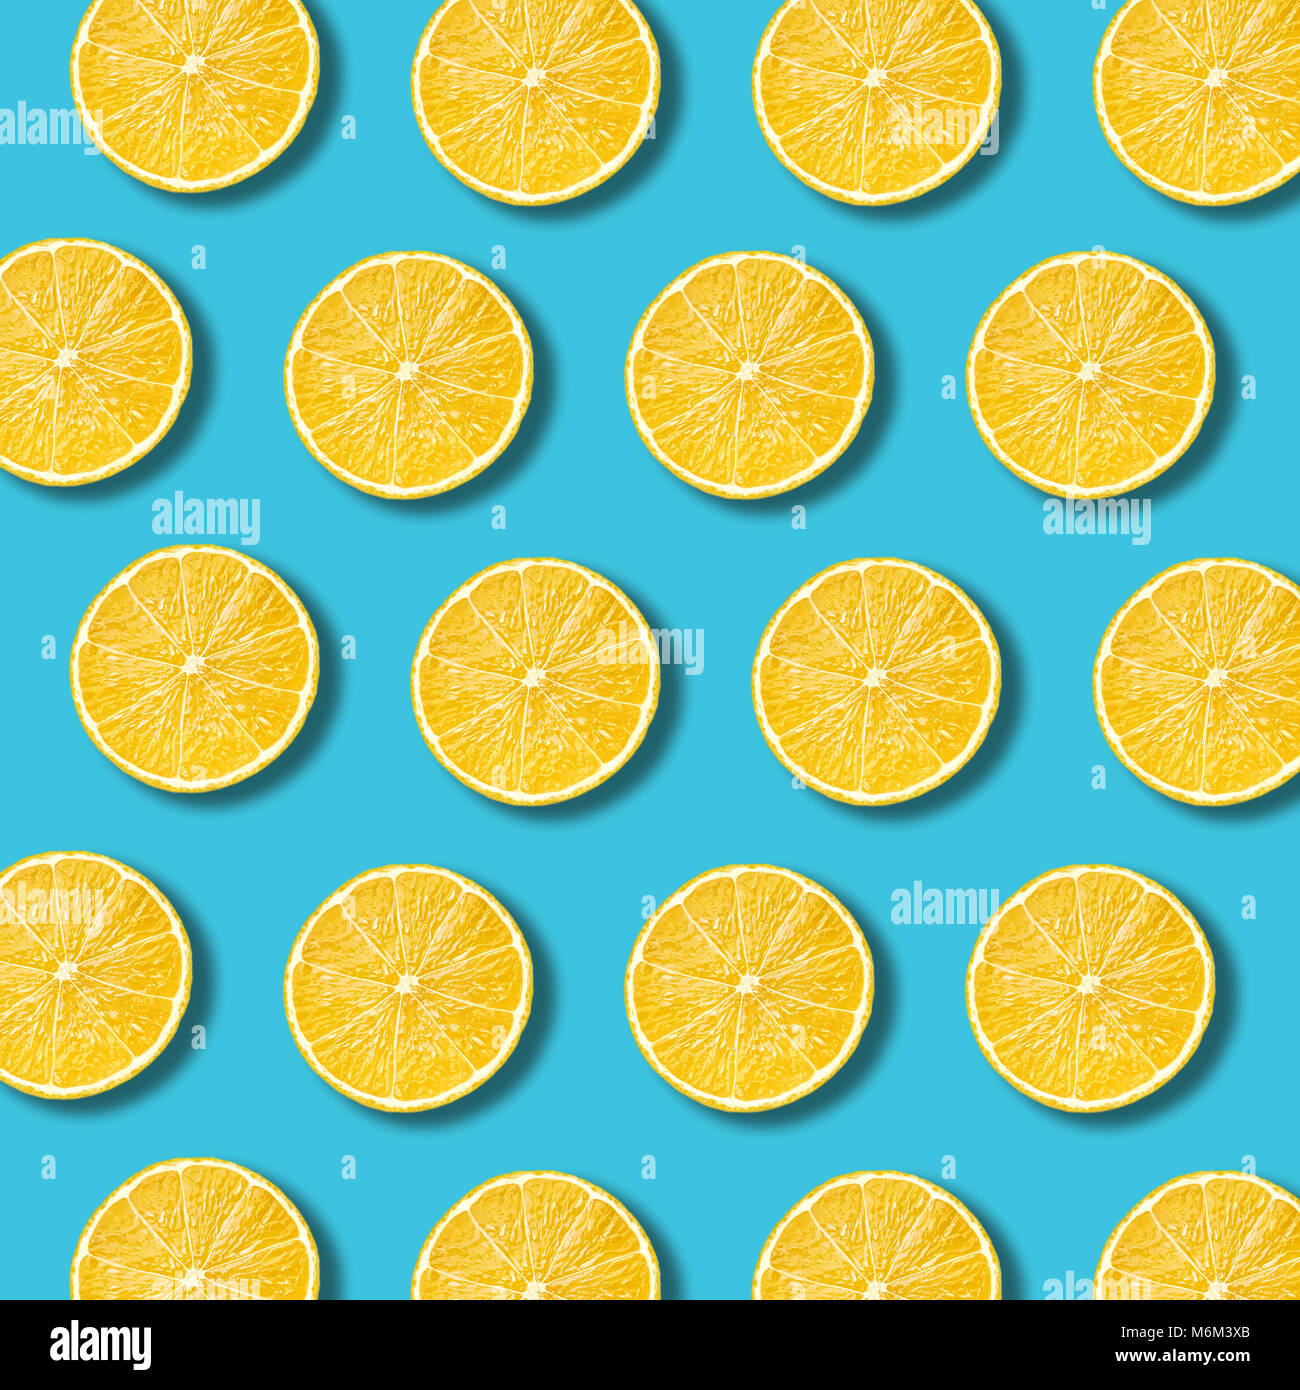 Lemon slices pattern on vibrant turquoise color background. Minimal flat lay food texture - Stock Image